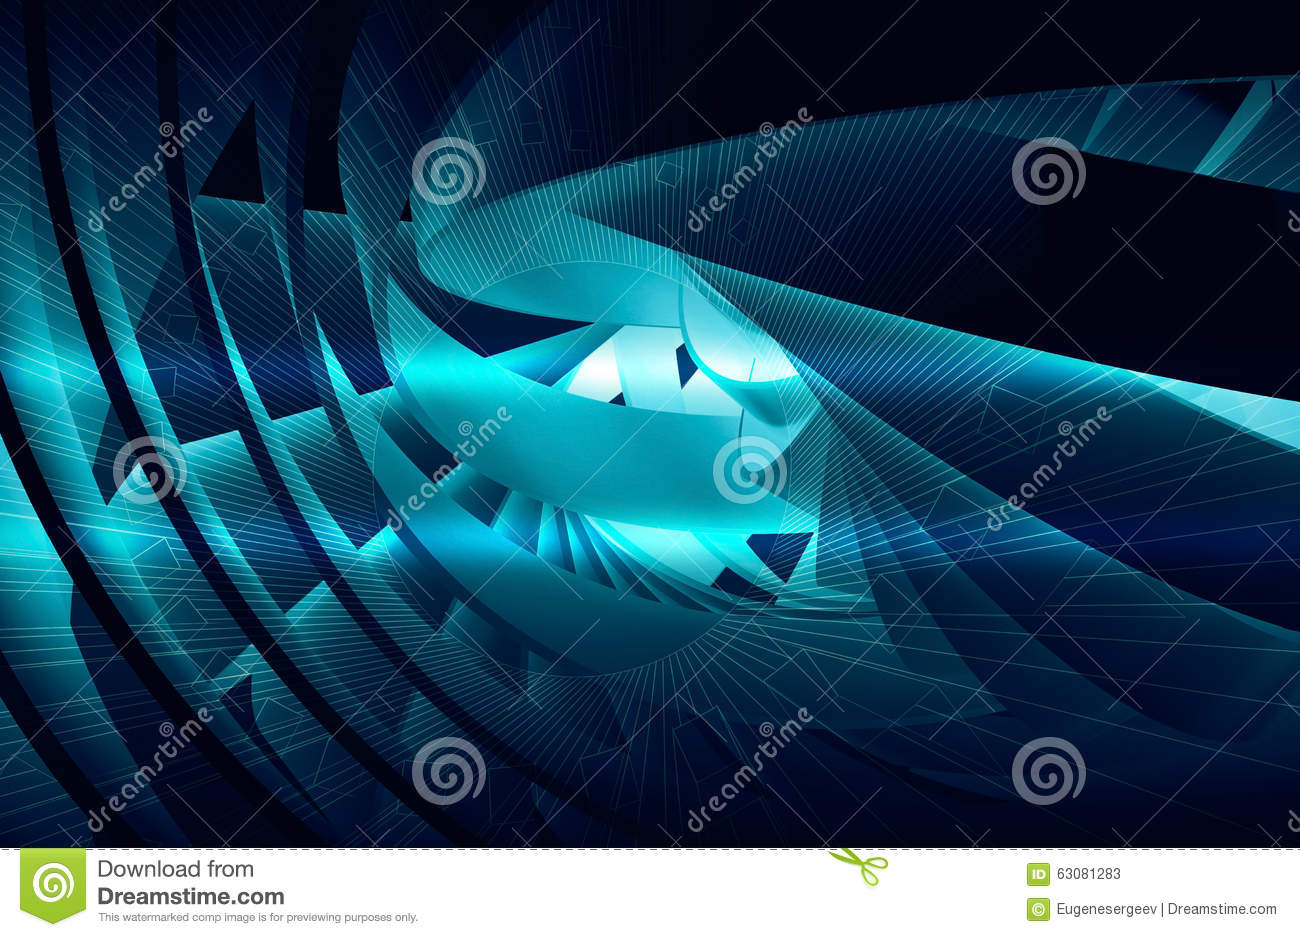 Download Fond Abstrait Avec La Spirale 3d Bleu-foncé Brillante Illustration Stock - Illustration du conceptuel, futuriste: 63081283